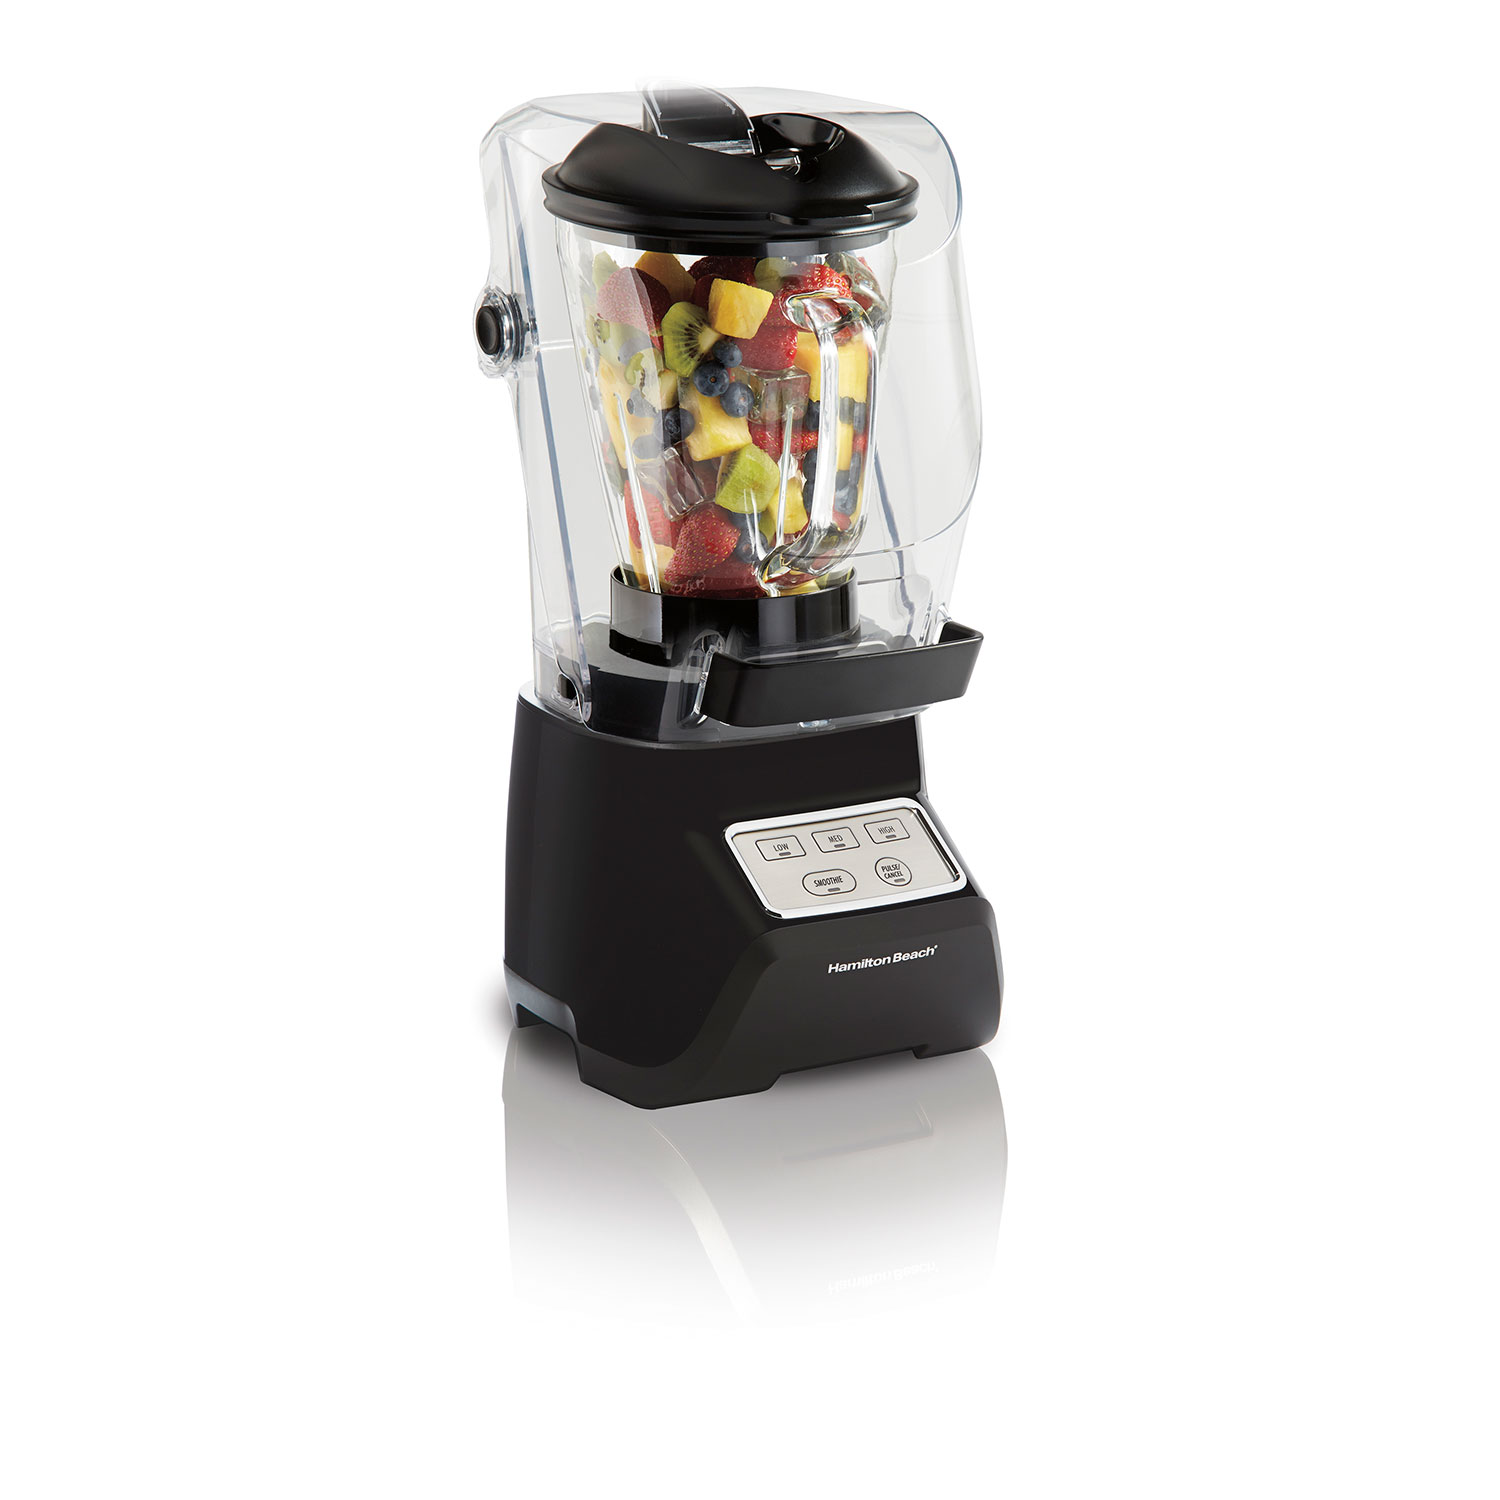 Sound Shield 950 Blender (53604)